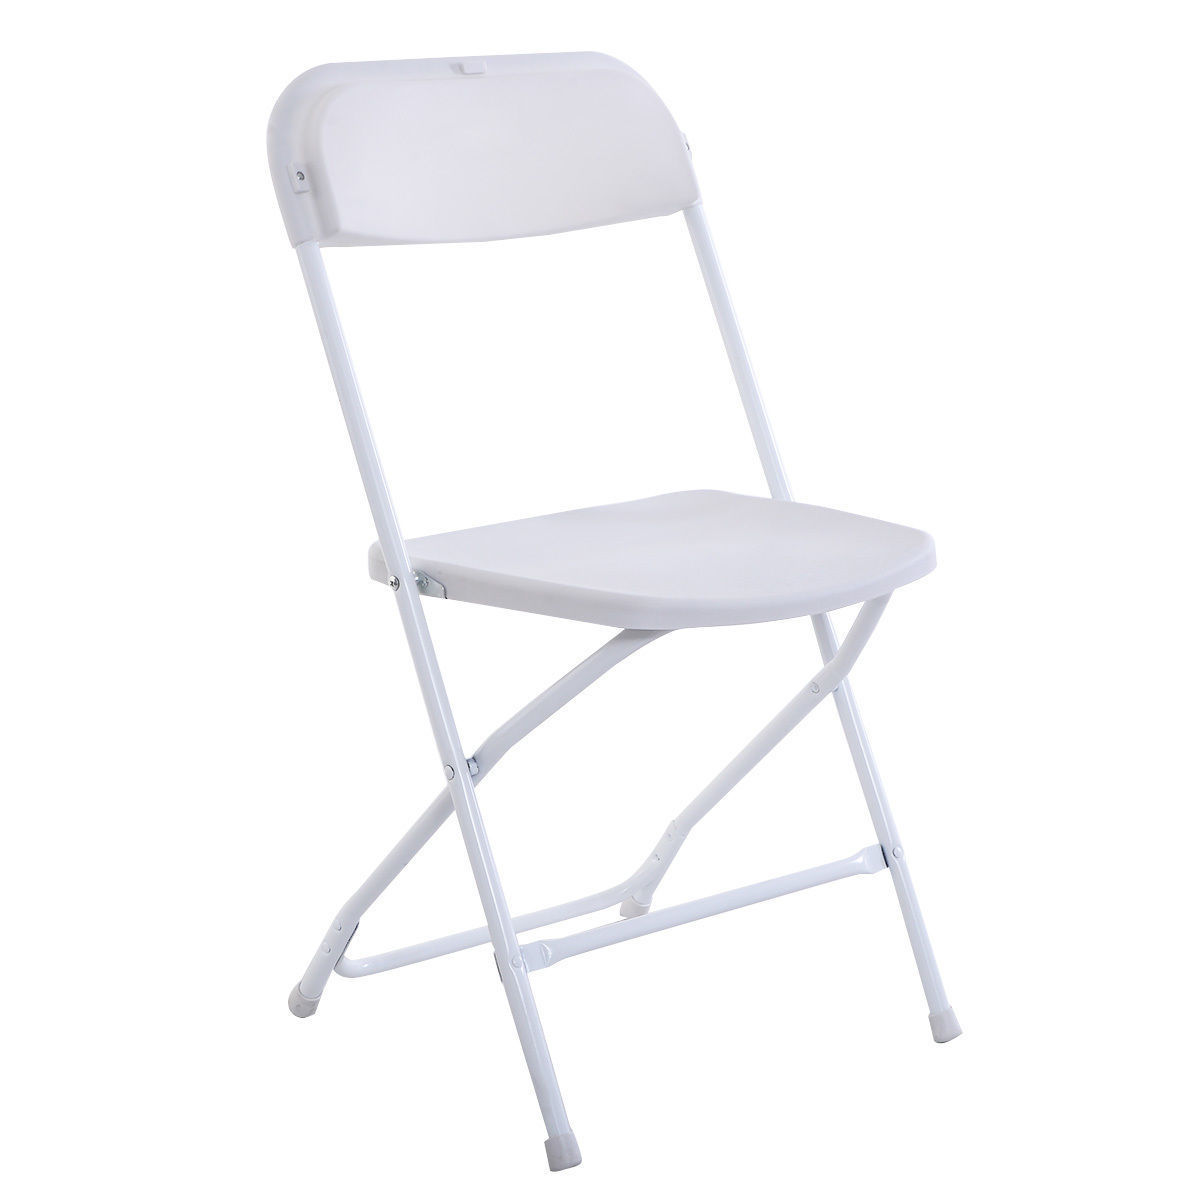 quality folding chairs chair rental san antonio new 5x commercial high stackable plastic